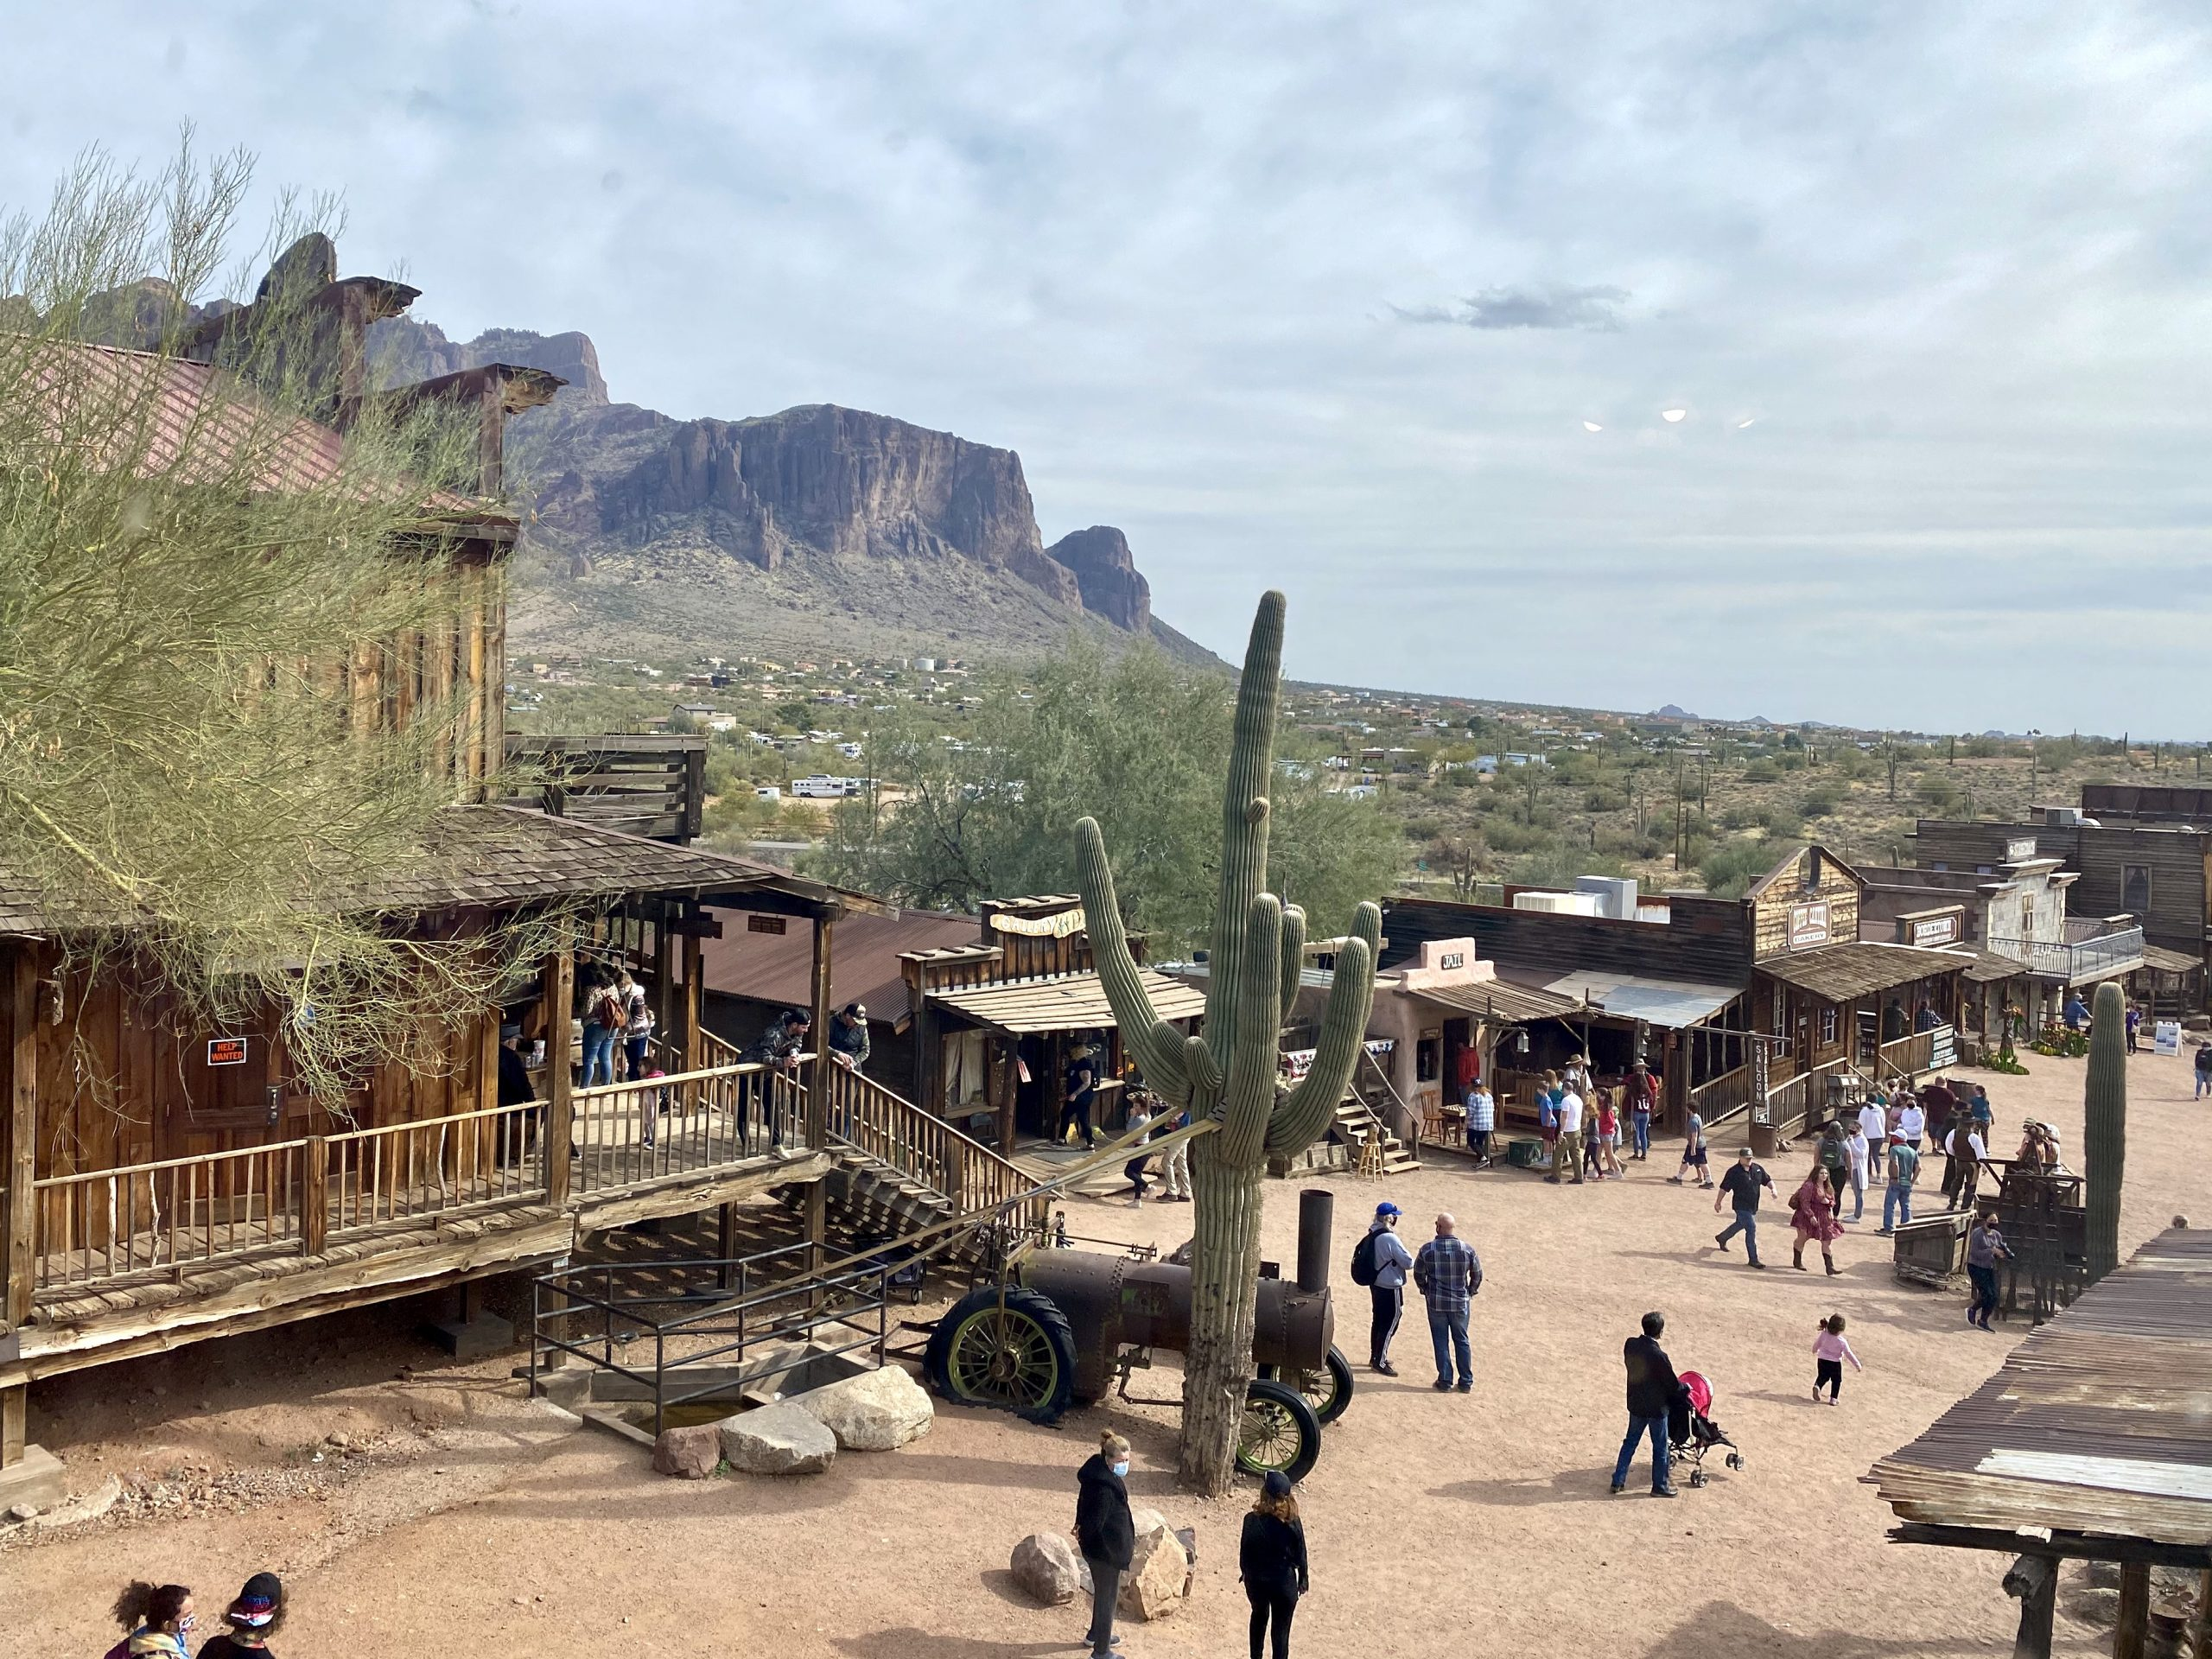 The Old West town of Goldfield Ghost Town welcomes guests in Mesa, Arizona